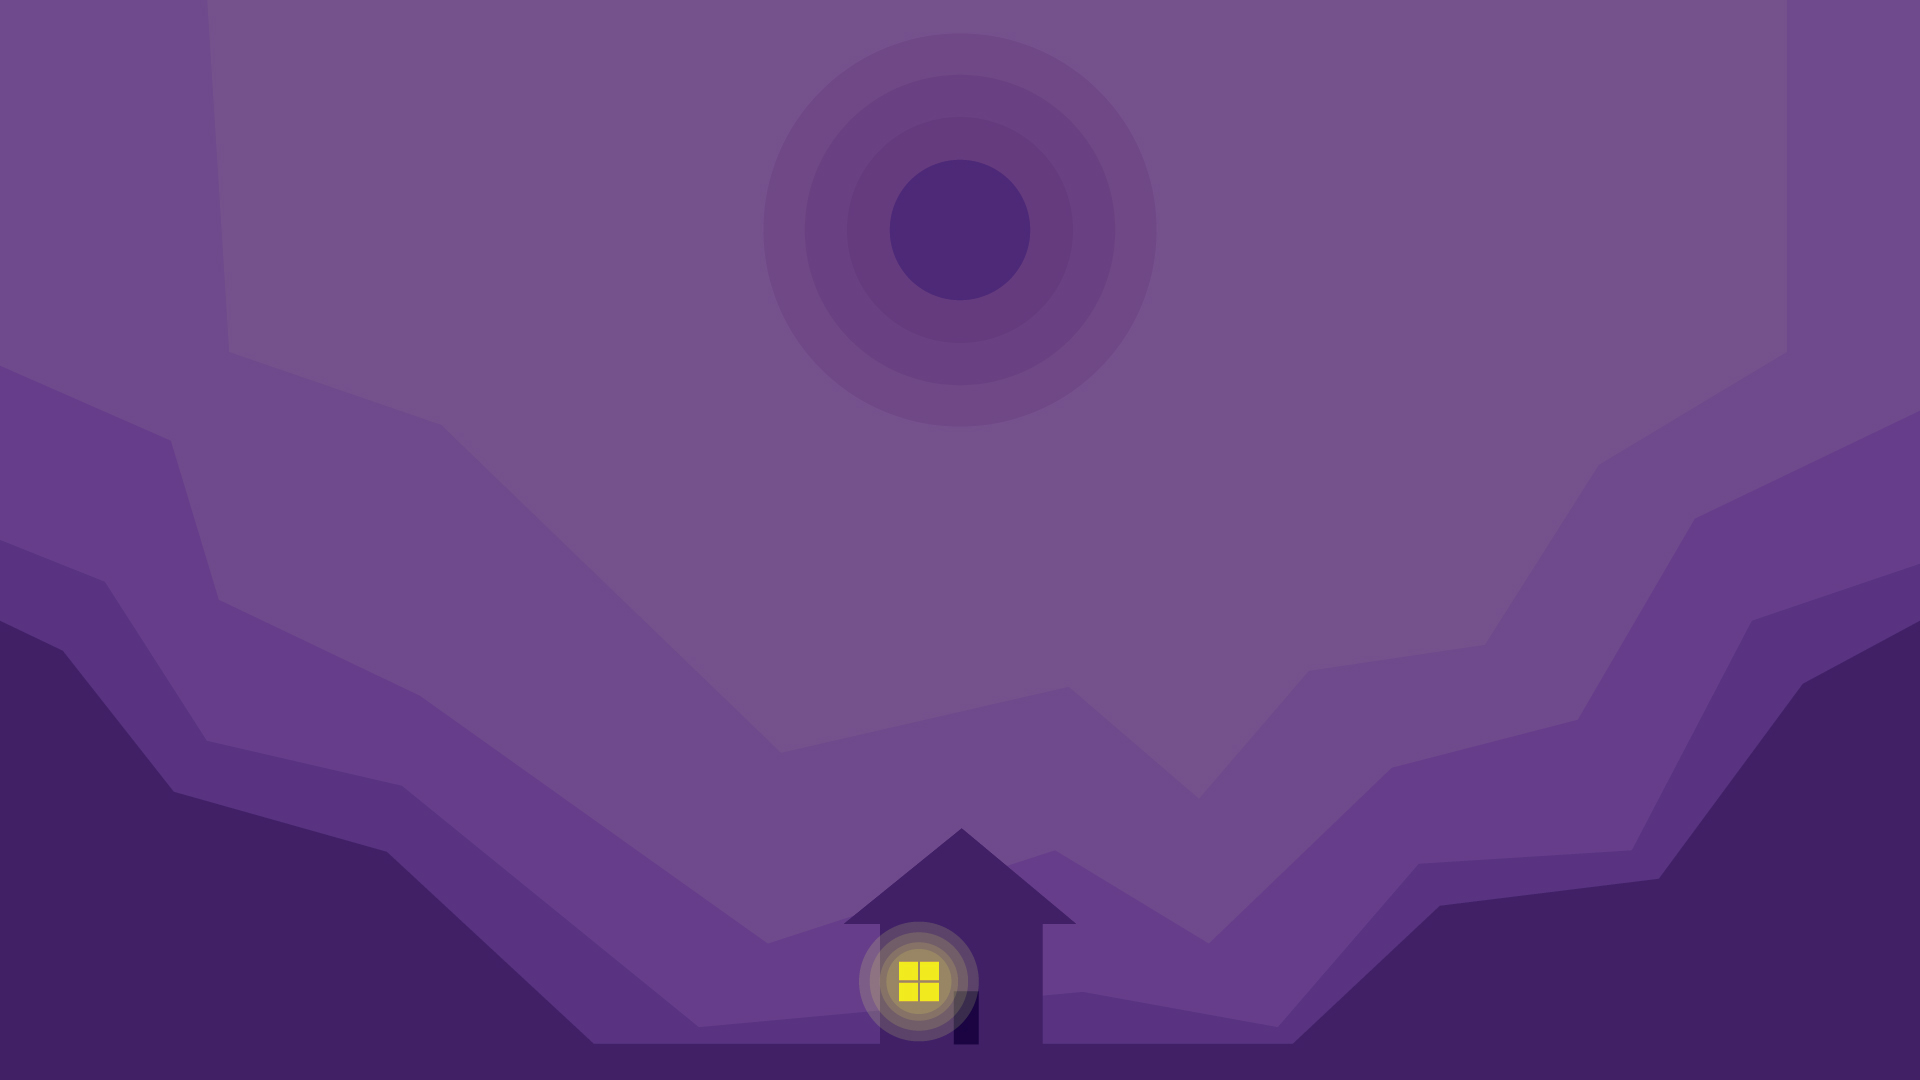 Simple House Vector by DastronTM on DeviantArt